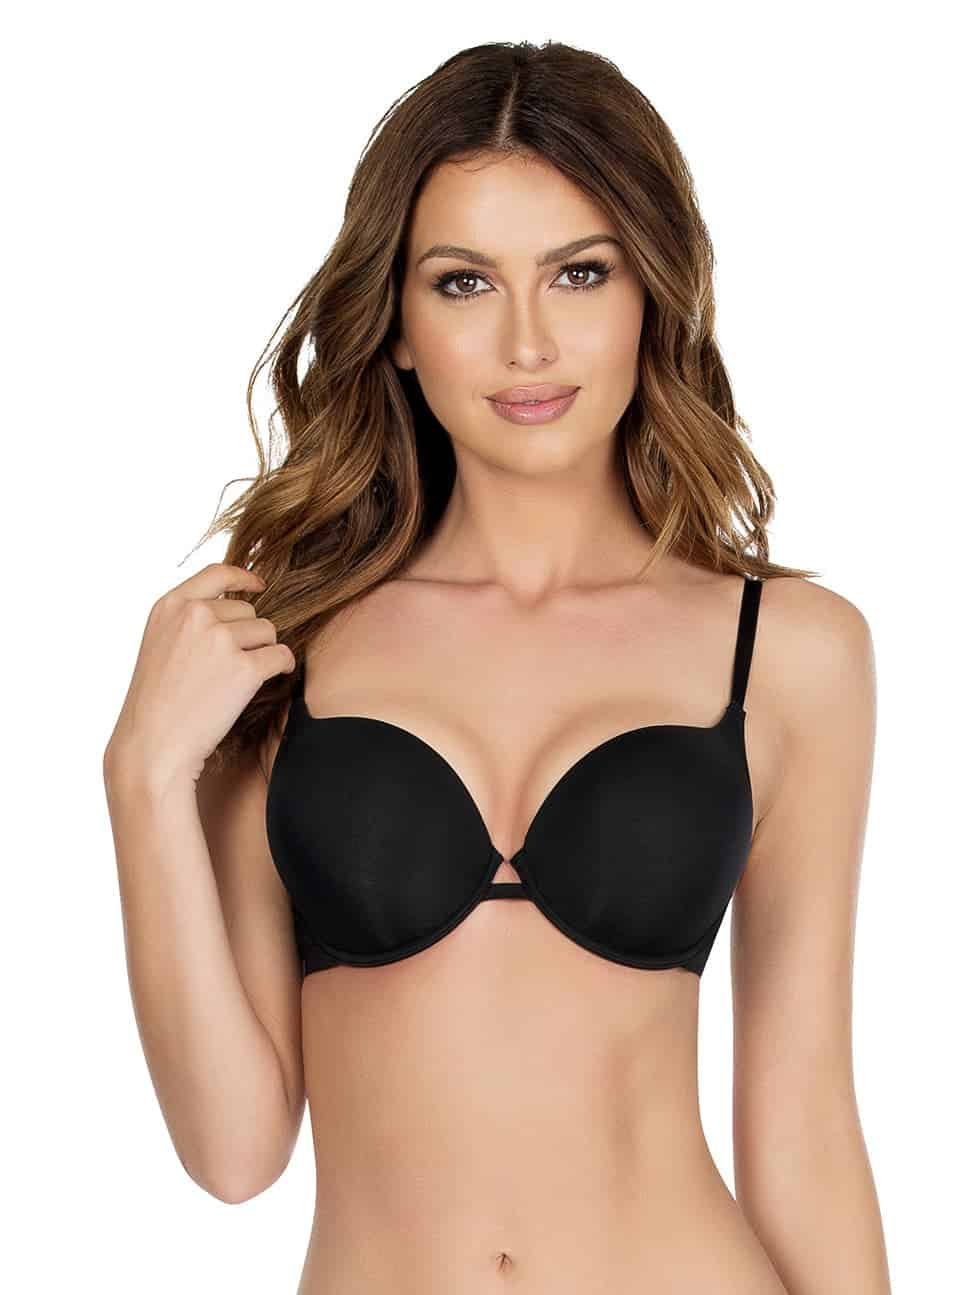 Lynn SuperPushUpBraP13021 Black Front copy - Lynn Super Push-up Bra - Black - P13021